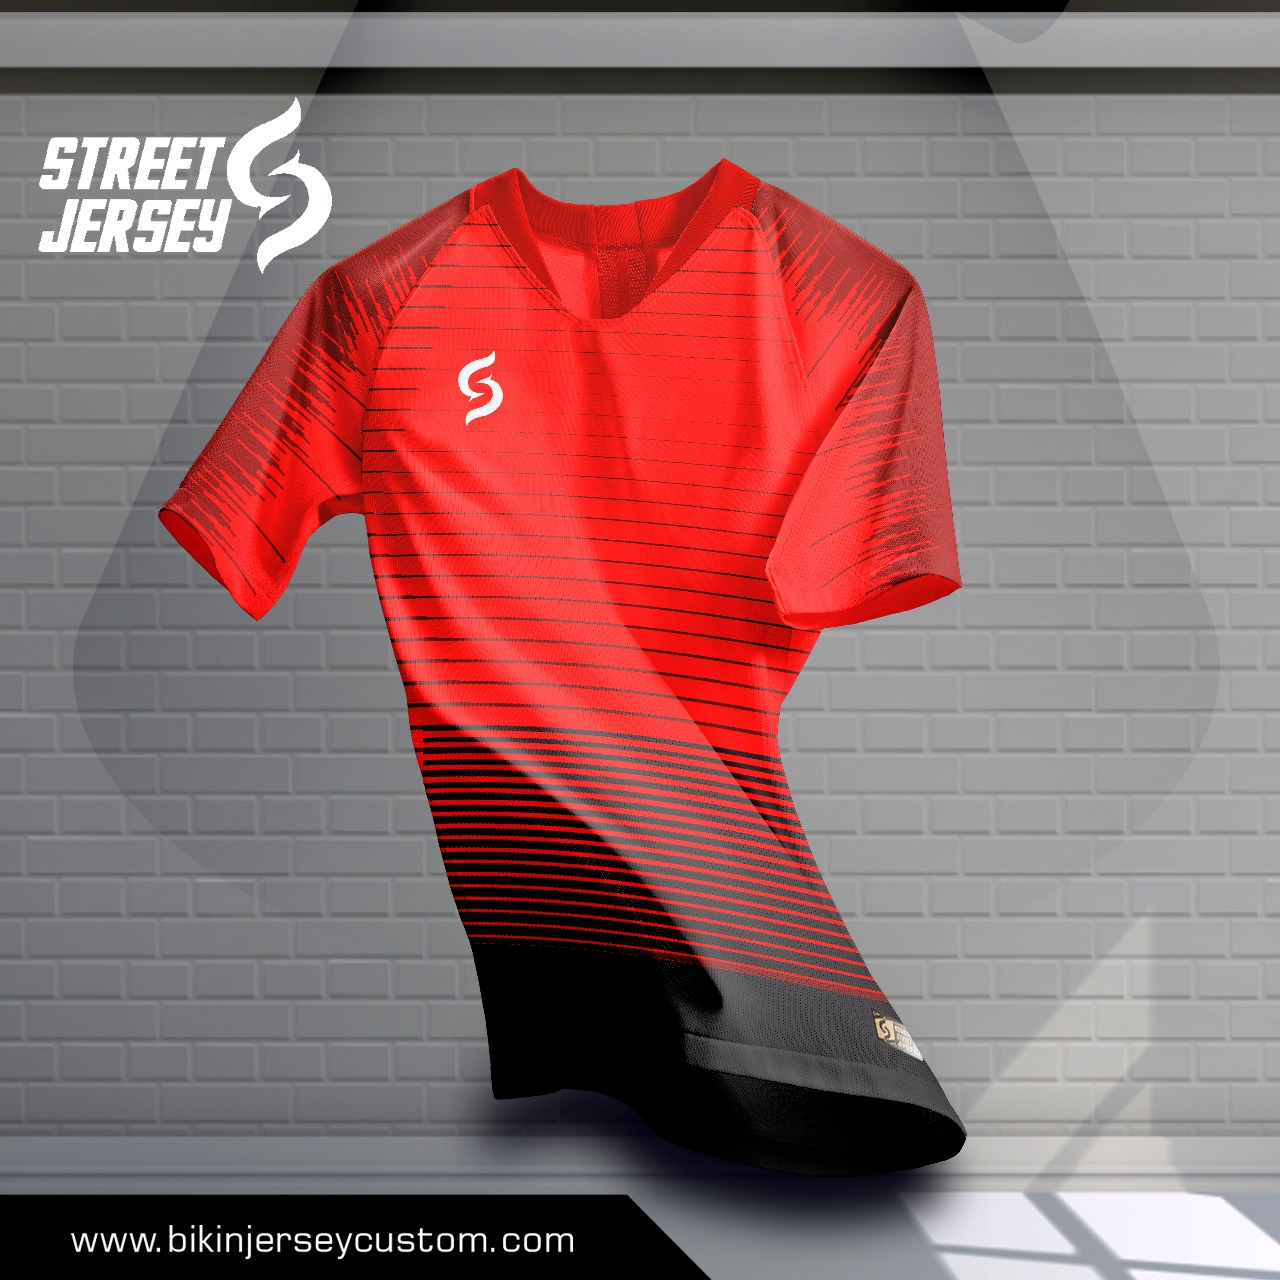 Jersey Bola 2018 Red Blouse Sj0015 Zoom Image